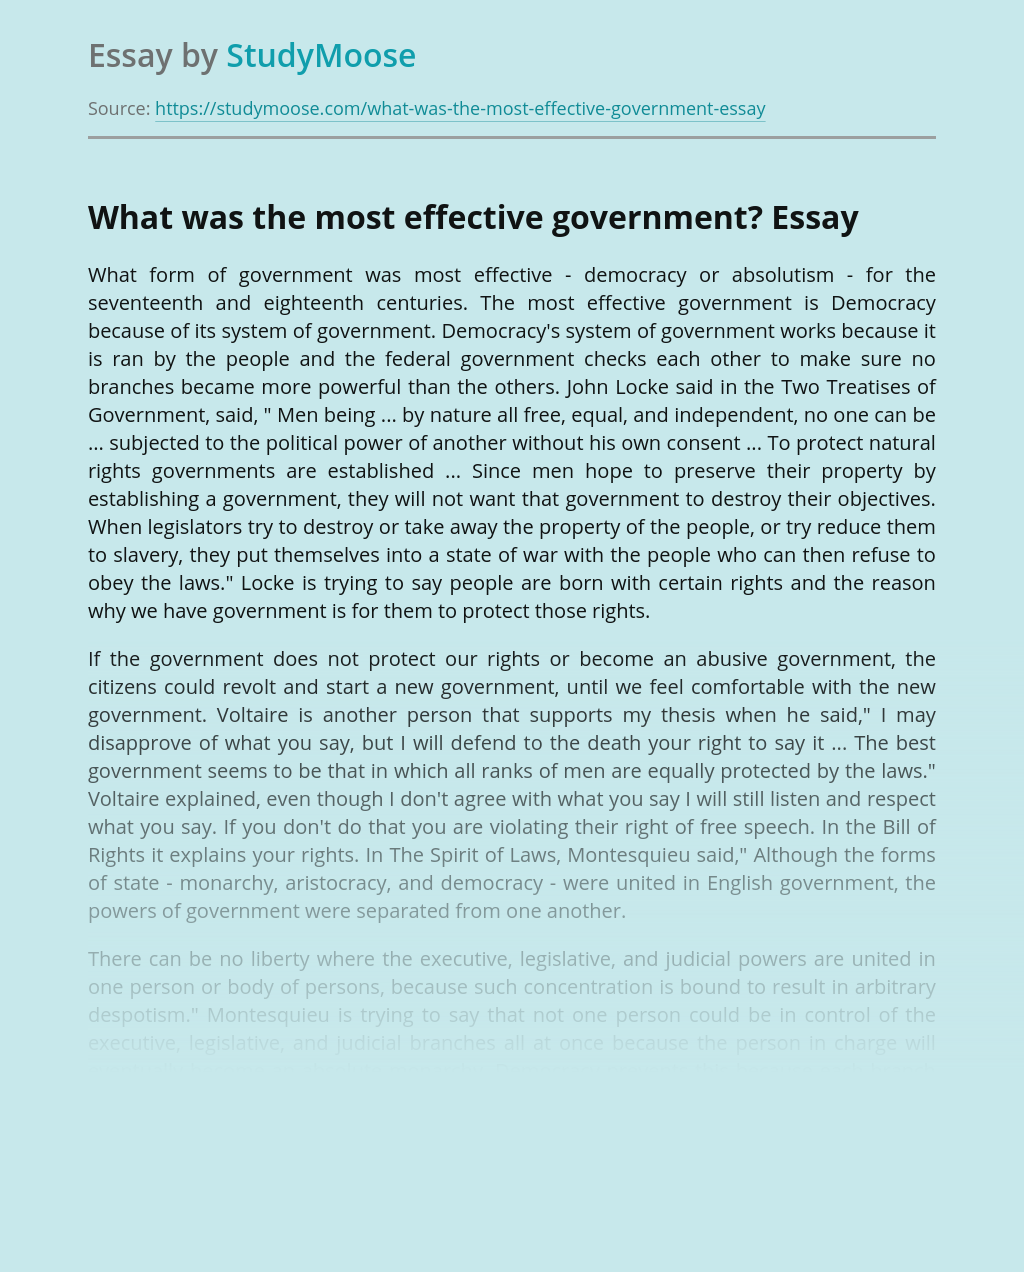 What was the most effective government?